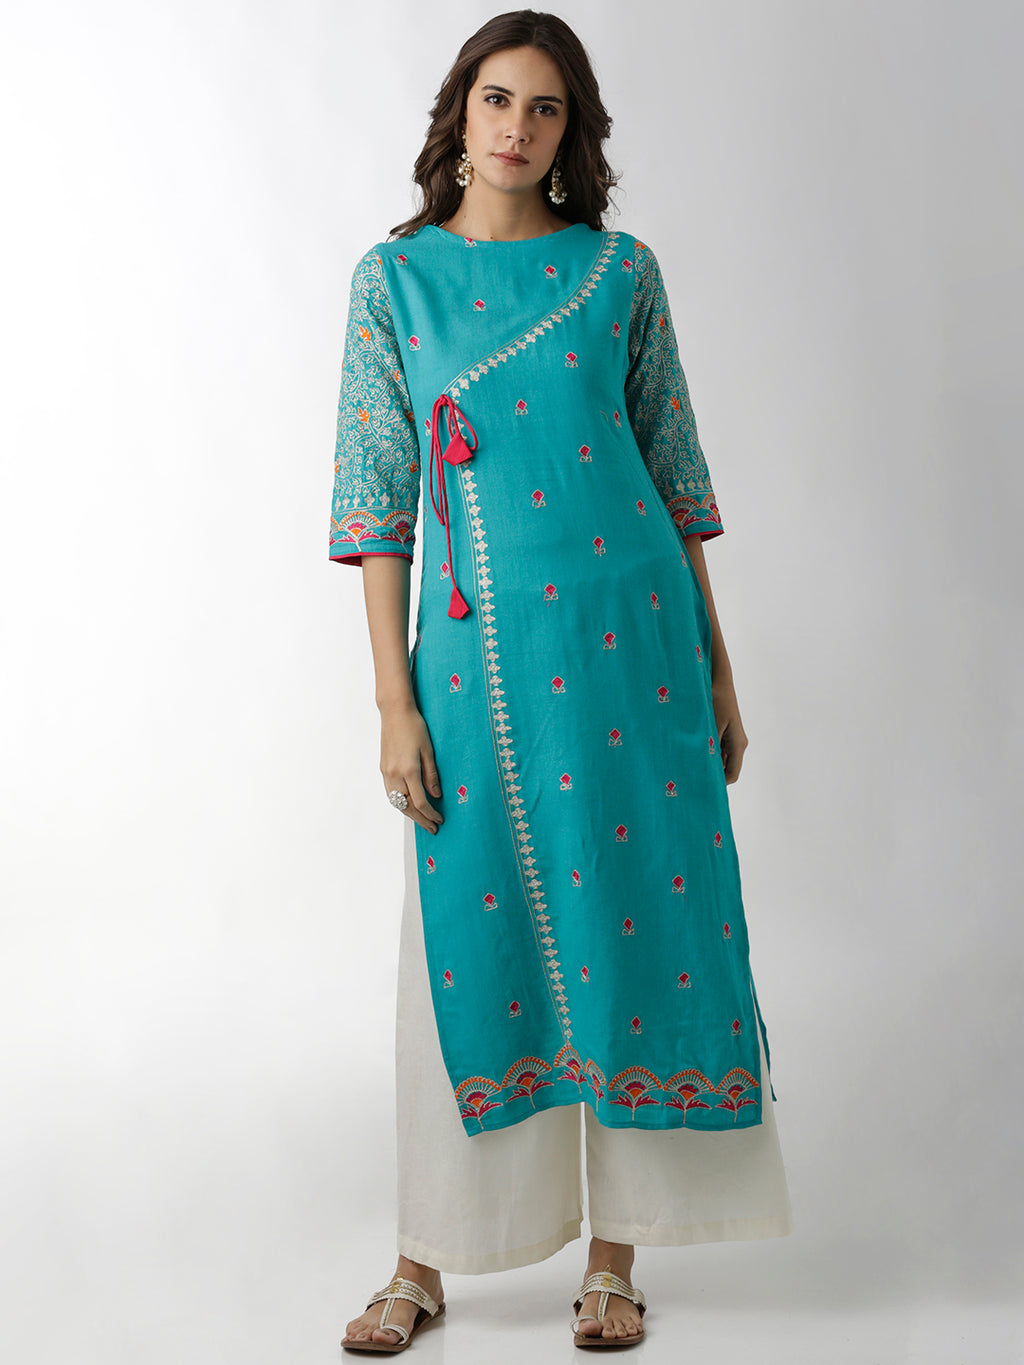 Breya Show Overlap Boat Neck Light Blue Embroidered Straight Kurta